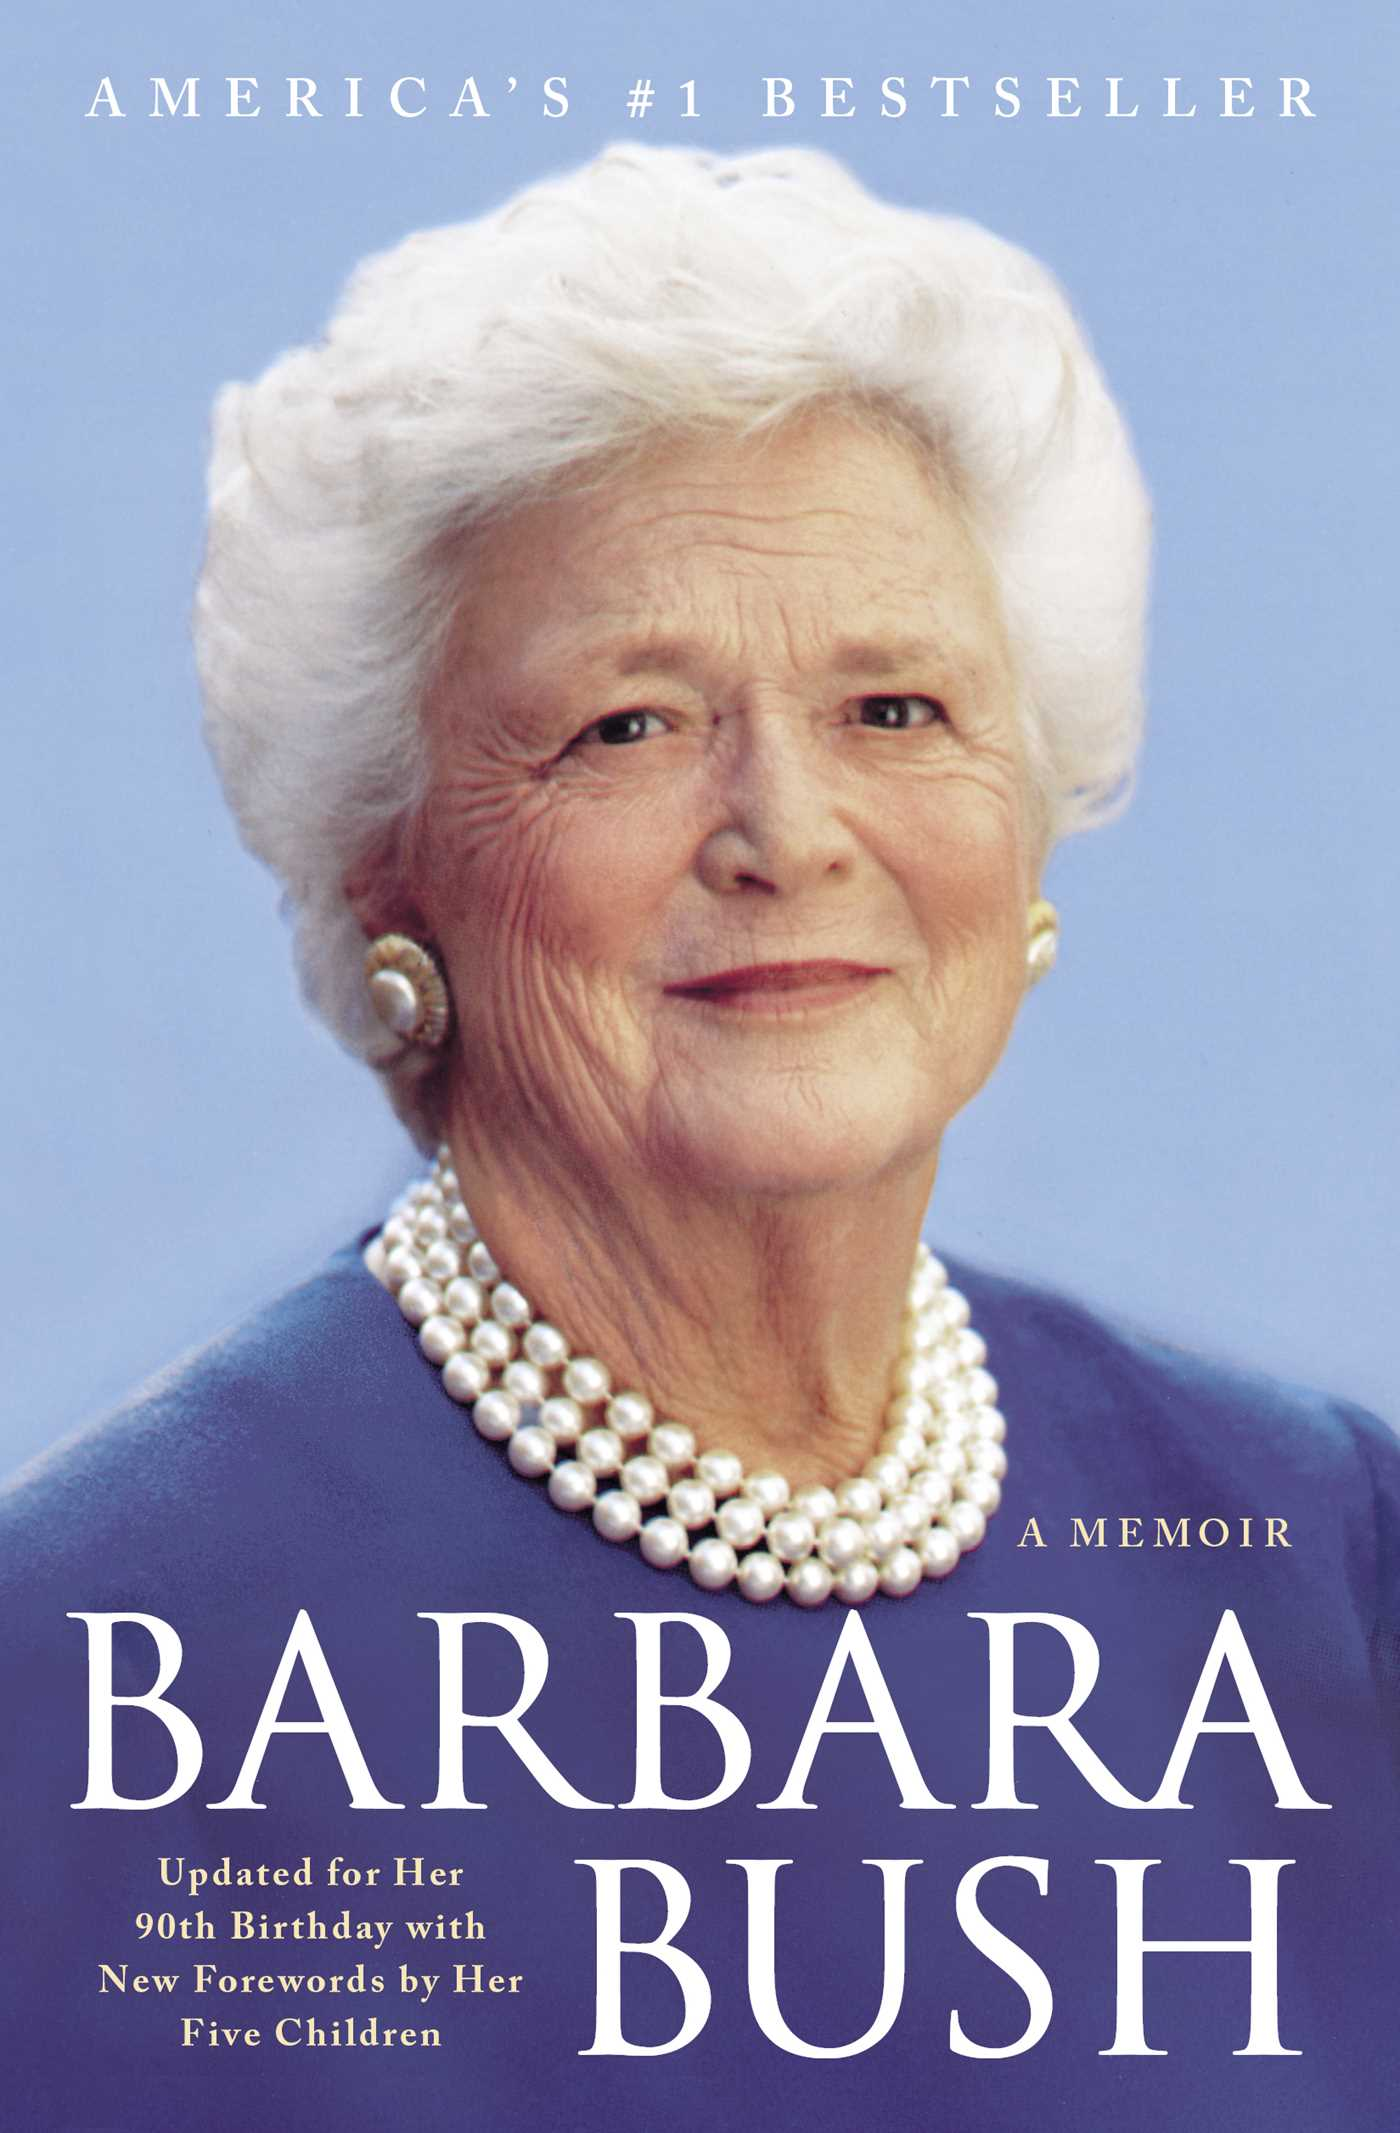 Barbara-bush-9781451603958_hr